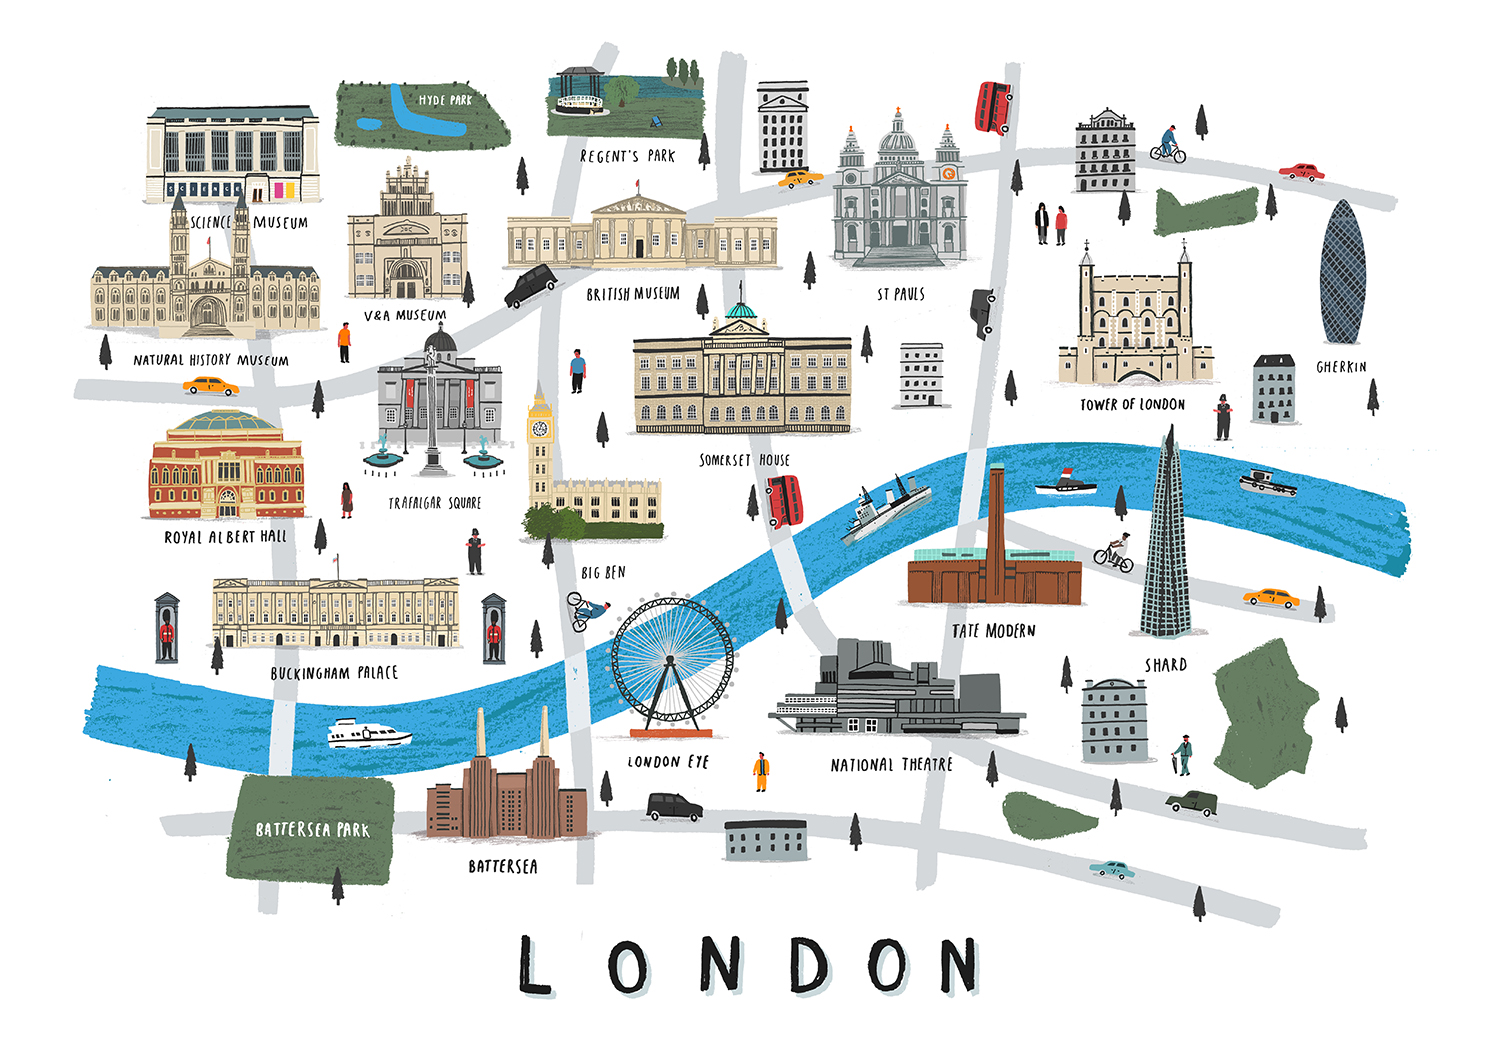 London Landmarks Map.London Map Print Alex Foster